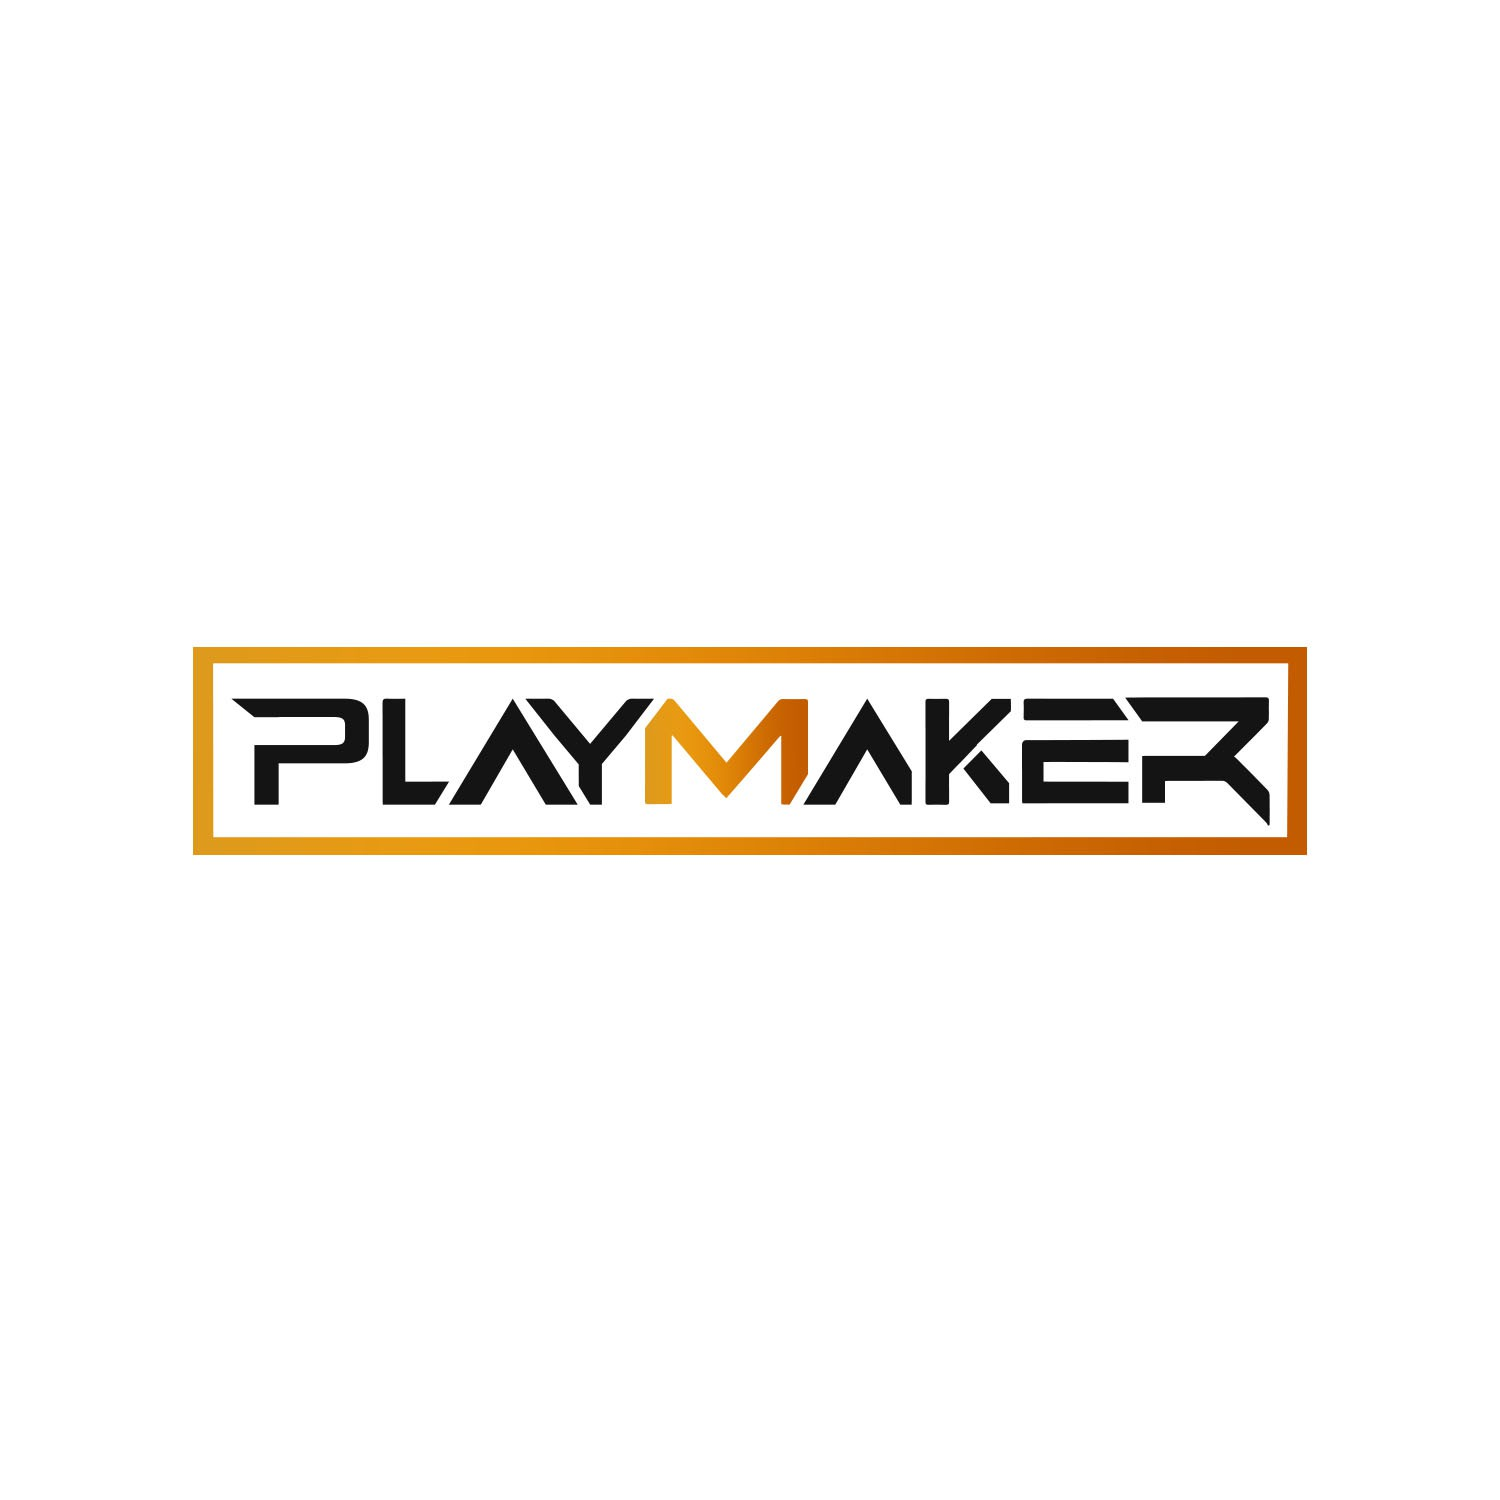 """""""Playmaker needs a powerful bold word mark for top performing athletes"""""""